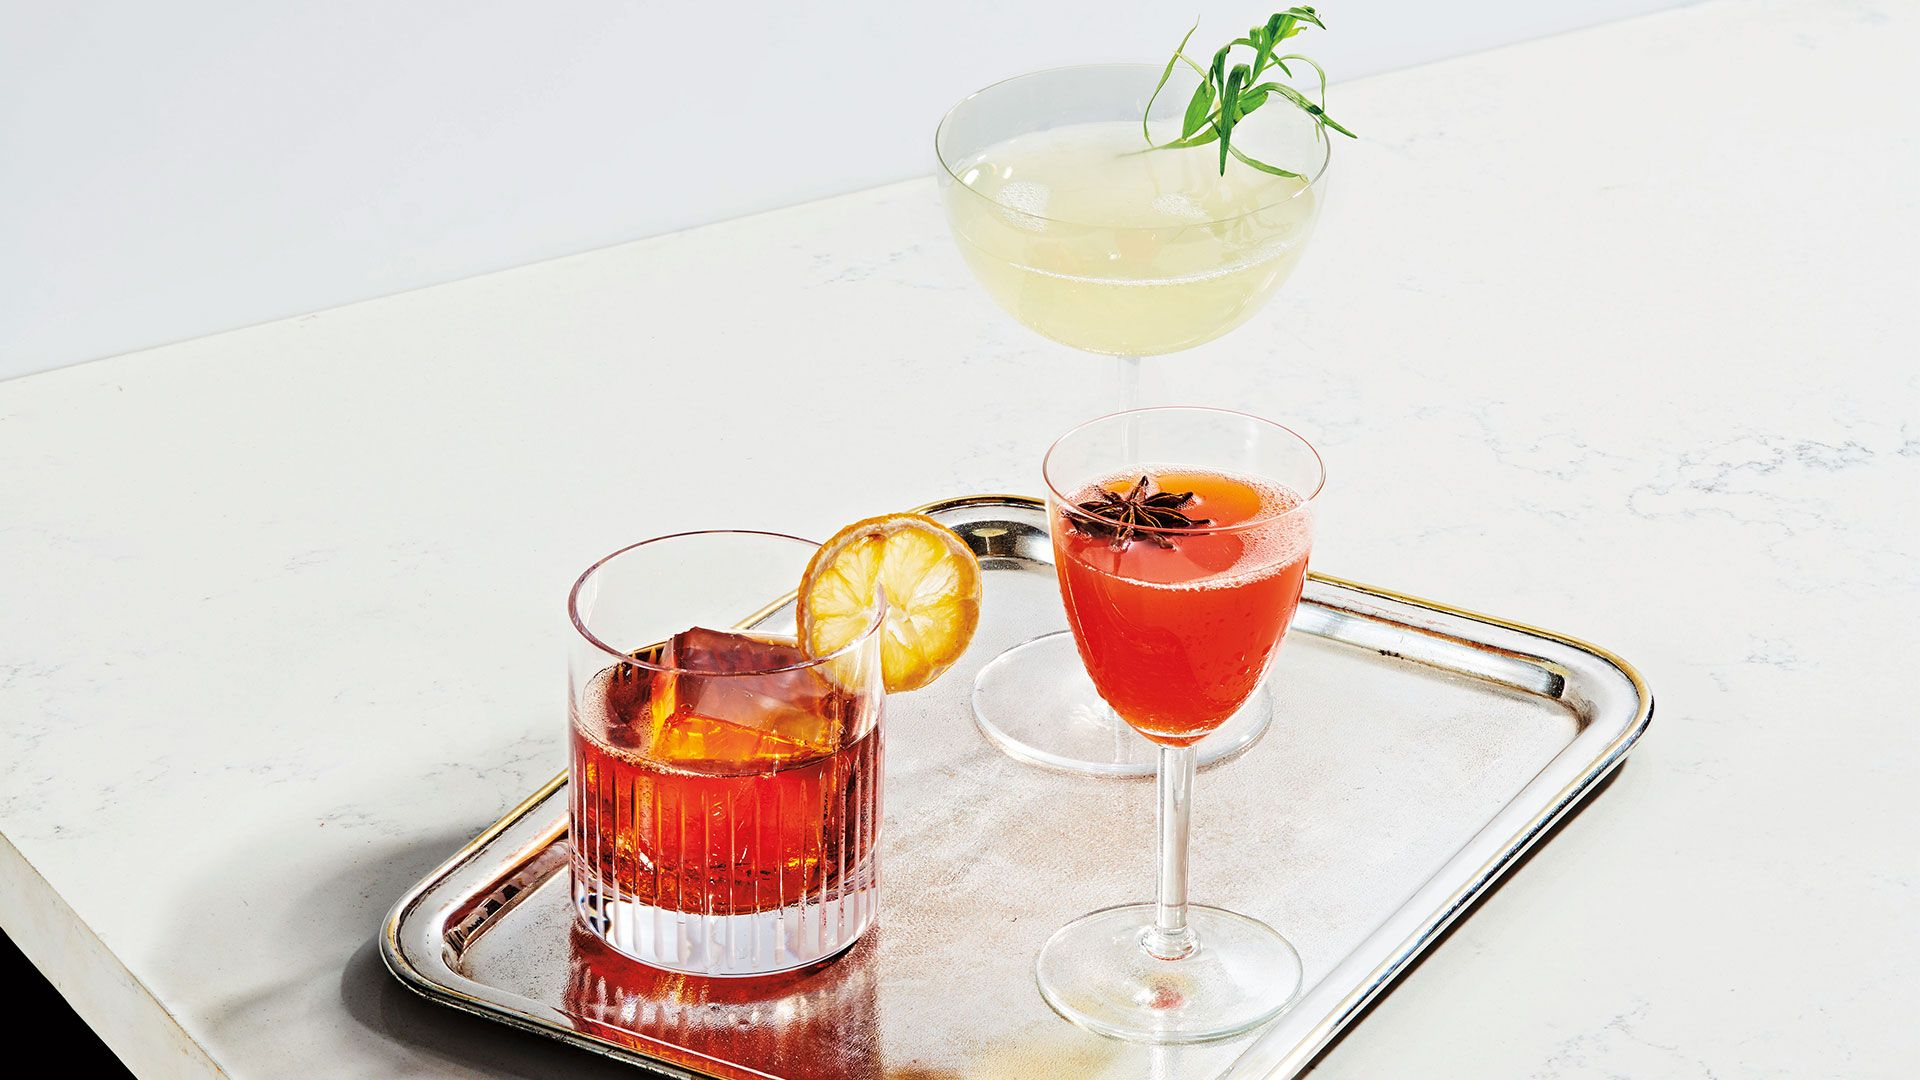 3 LowSugar Cocktails That Pack Flavor Without Syrups